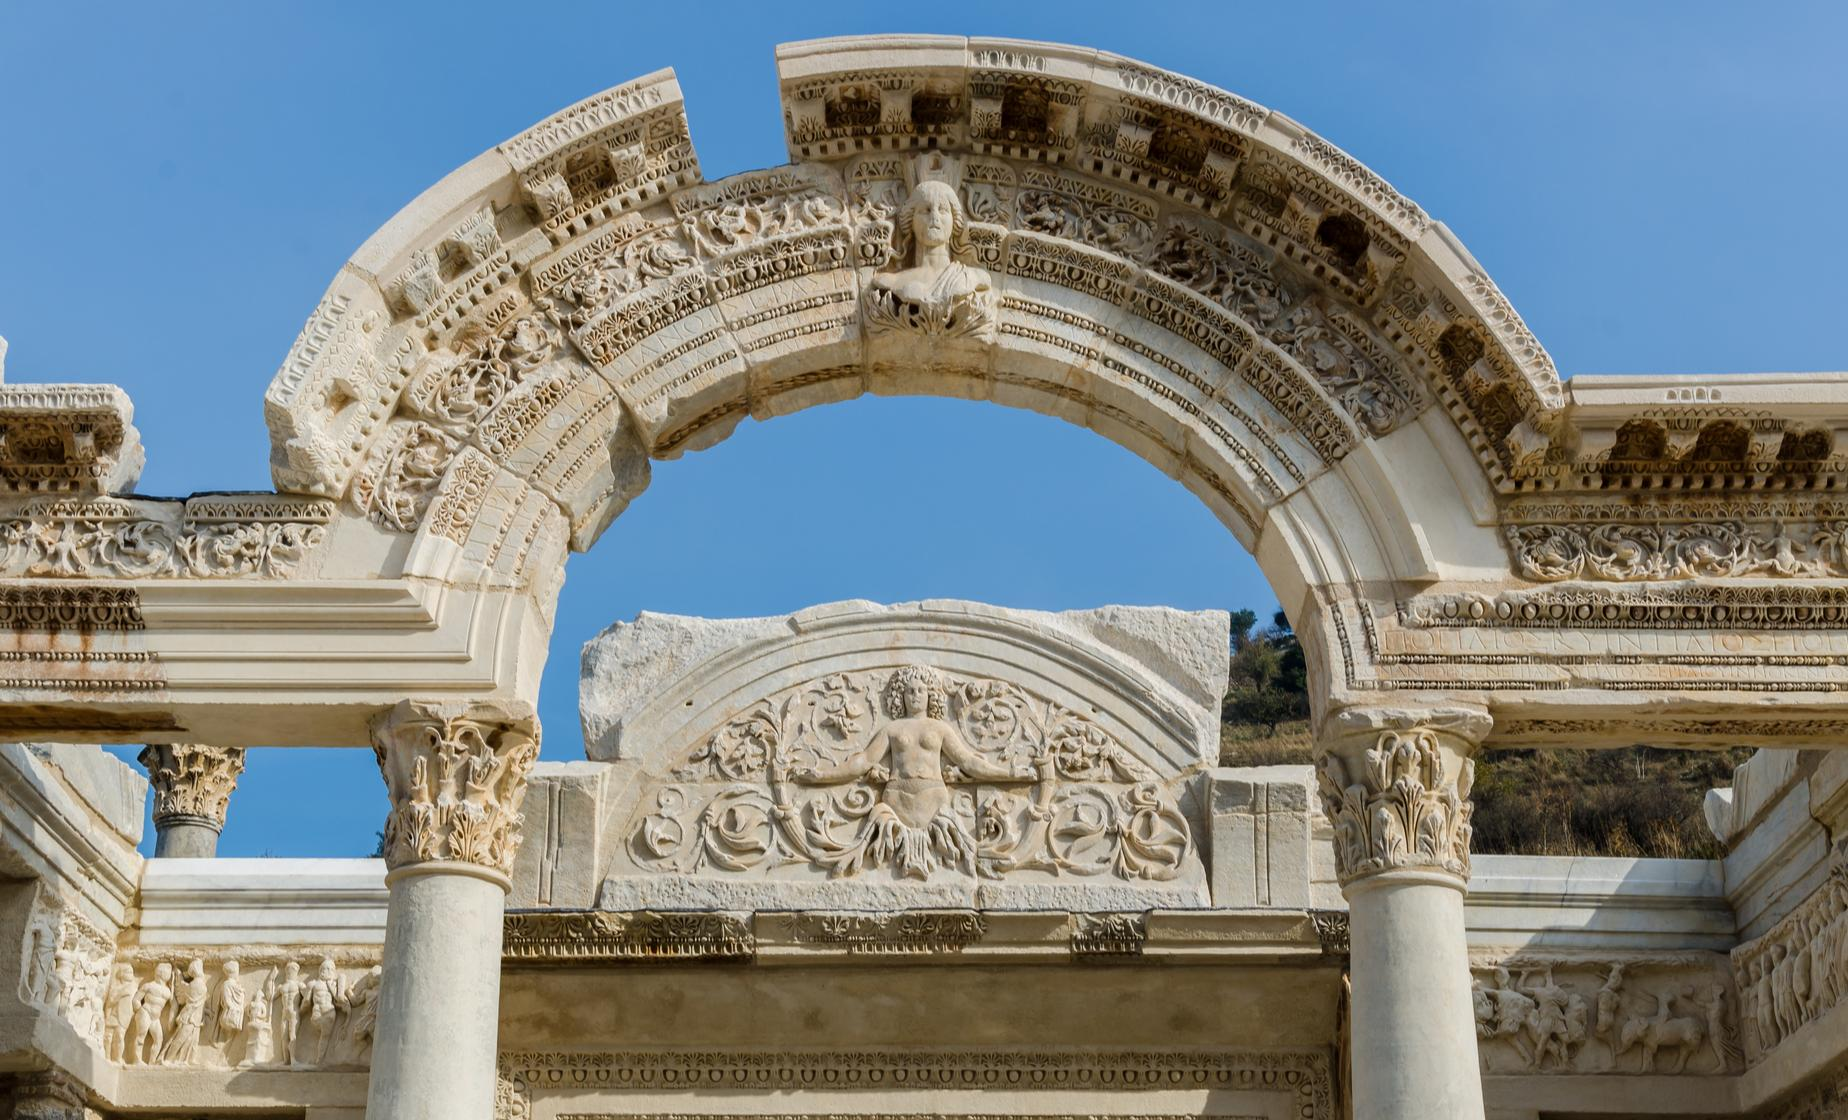 Exclusive Ephesus, St. John and Carpets Tour (Thermal Baths of Scolastika, the Great Theater)